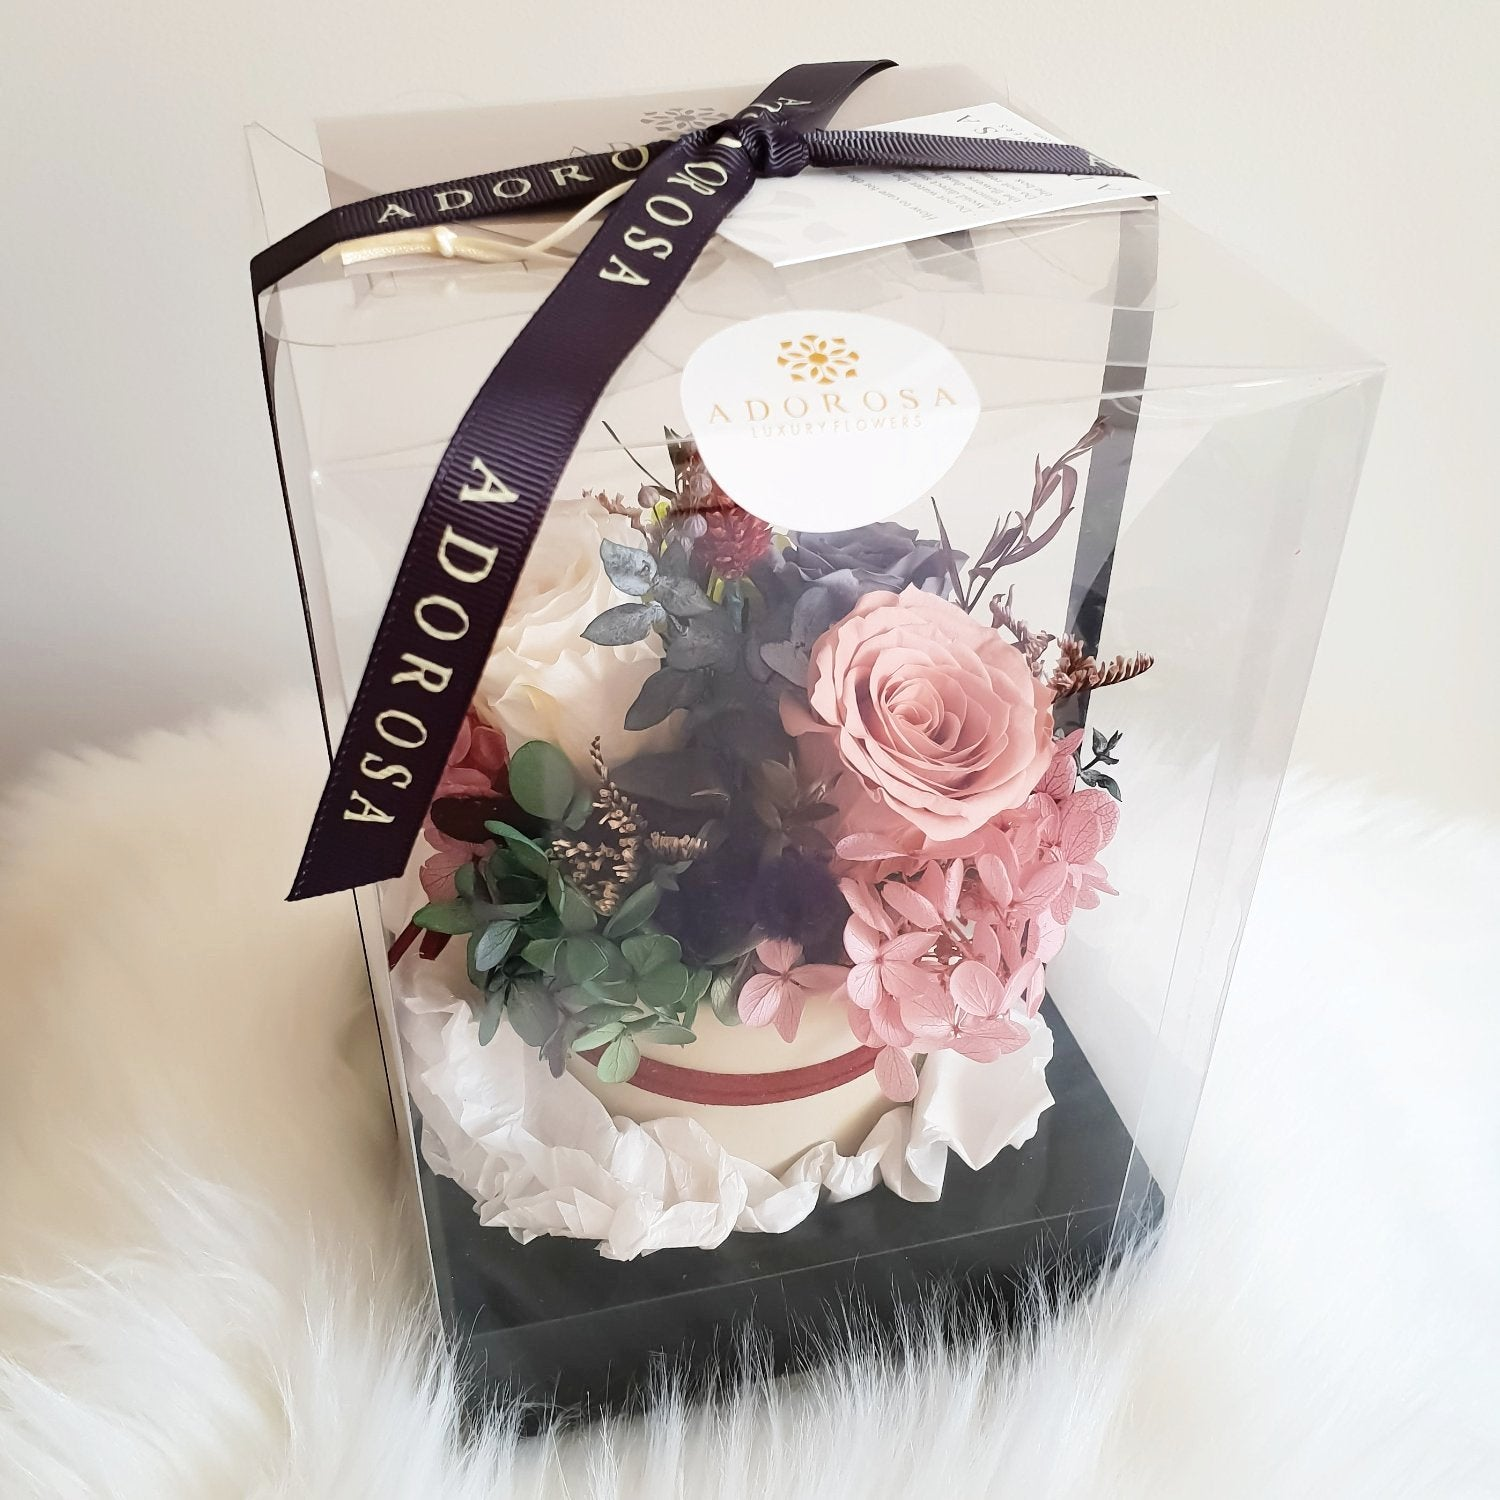 long lasting roses sydney, preserved rose, preserved flower, long lasting rose, rose box, flower box, sydney florist, flower delivery sydney, eternity rose, rose box sydney, flower box sydney, rose delivery, birthday gift, wedding gift